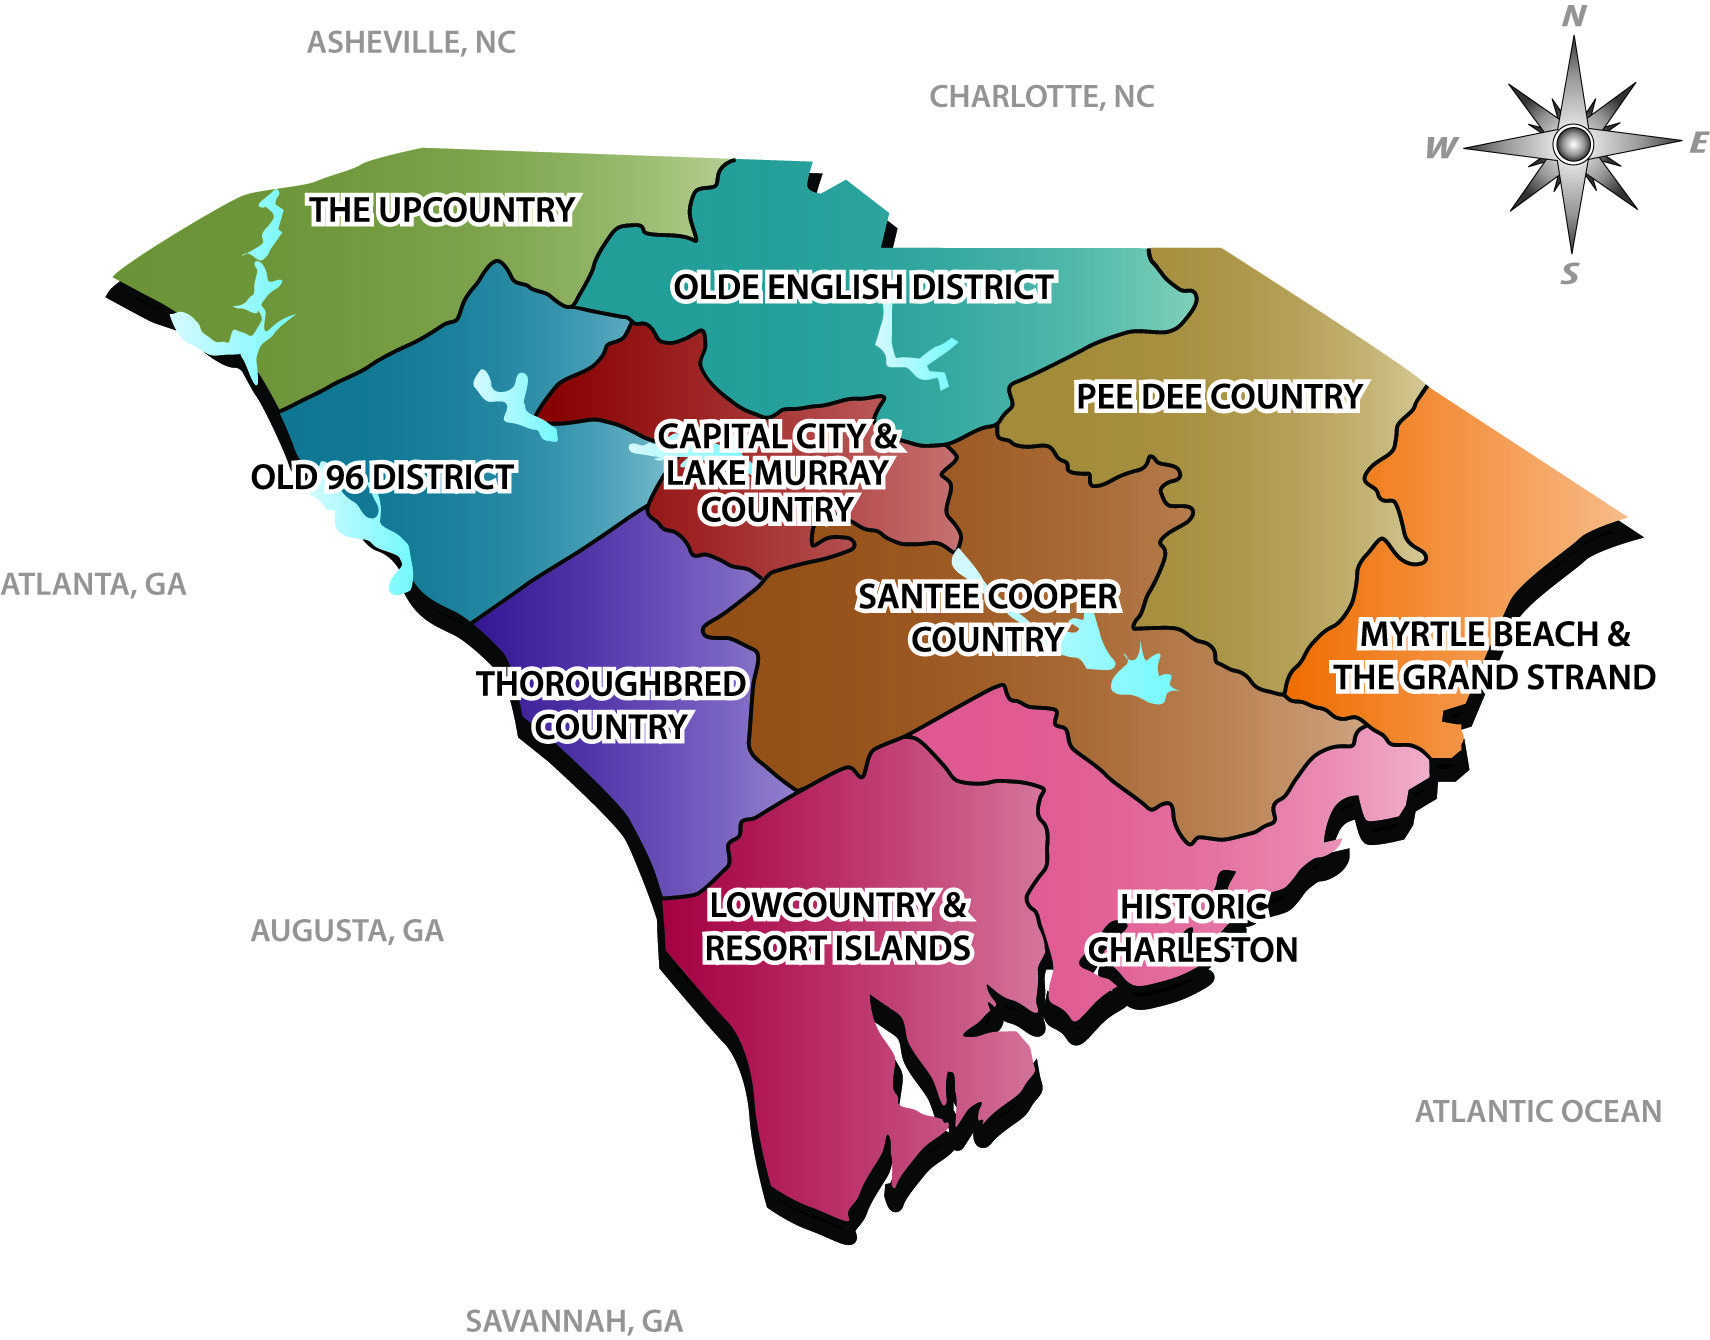 Where can you find a map of the South Carolina coast?